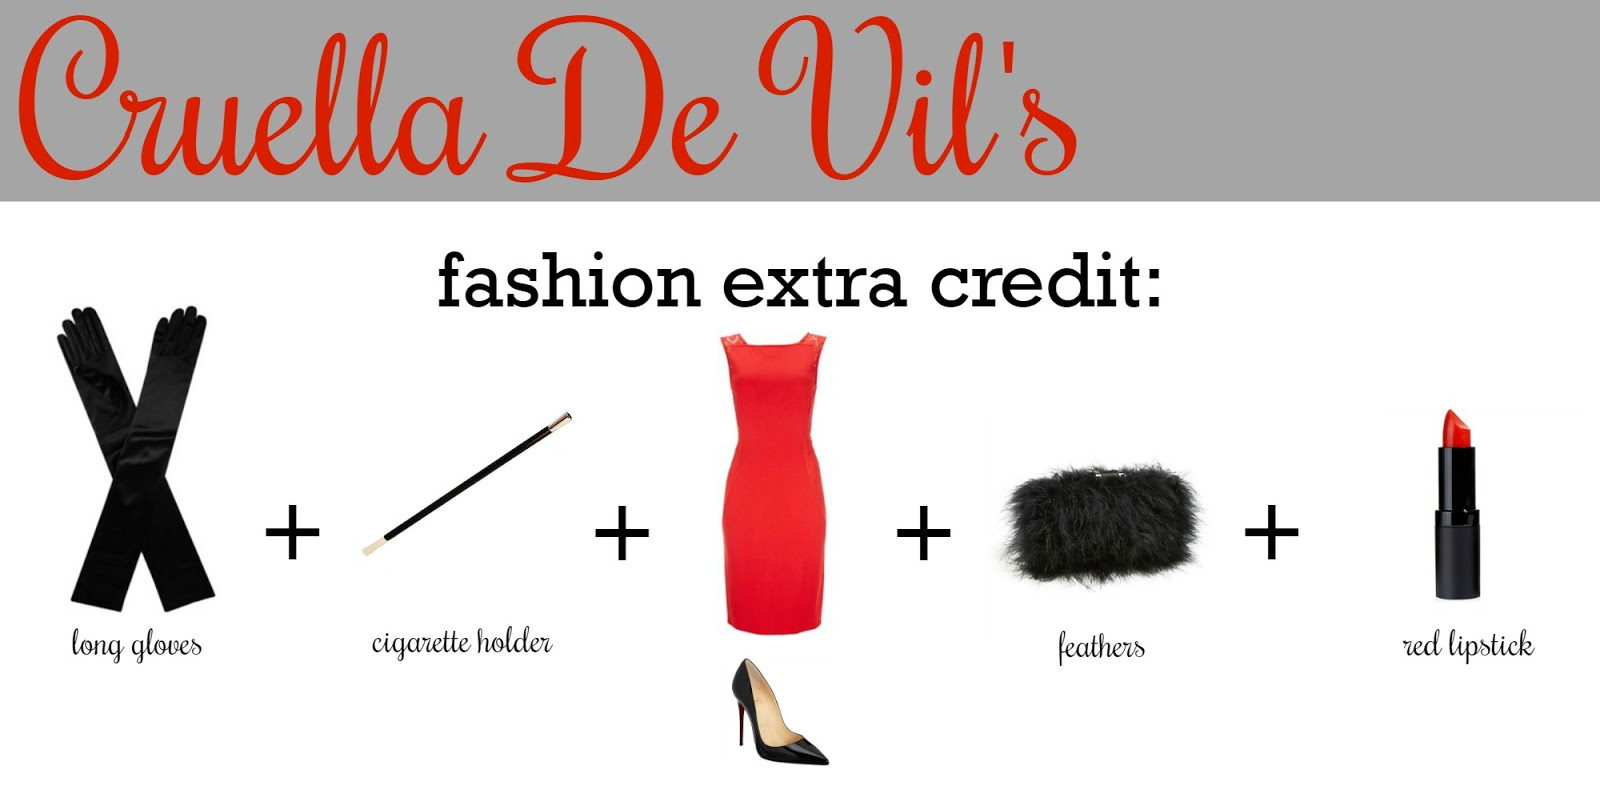 My favorite things cruella de vil costume tutorial diy if you would like to make your cruella look more detailed adding one or more of these items can create that depth in your ensemble solutioingenieria Images